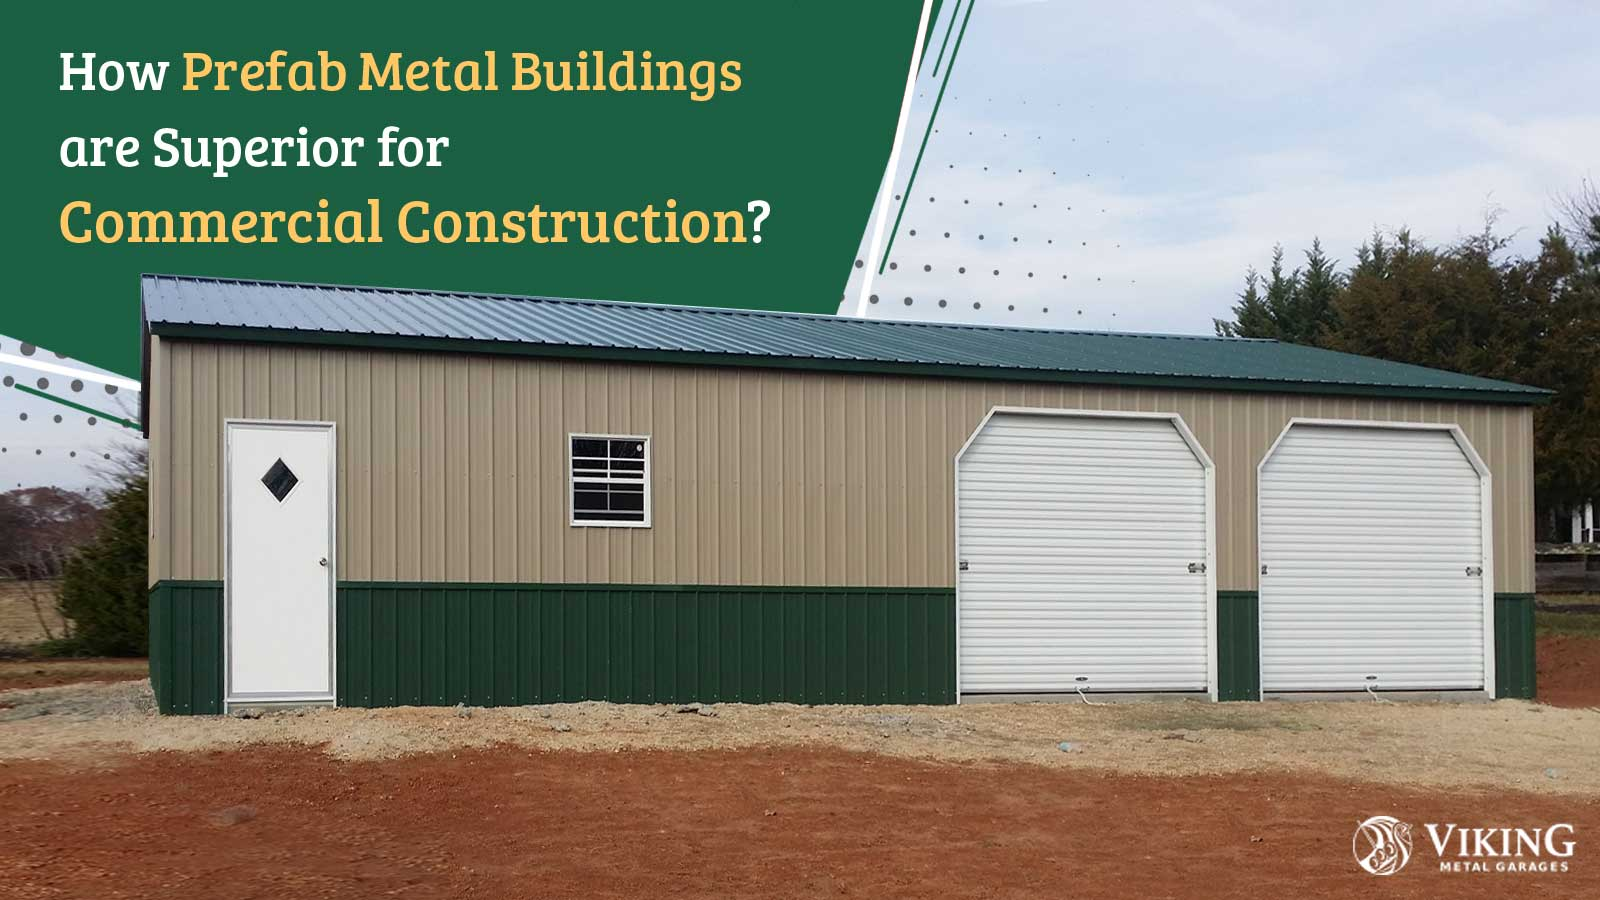 How Prefab Metal Buildings are Superior for Commercial Construction